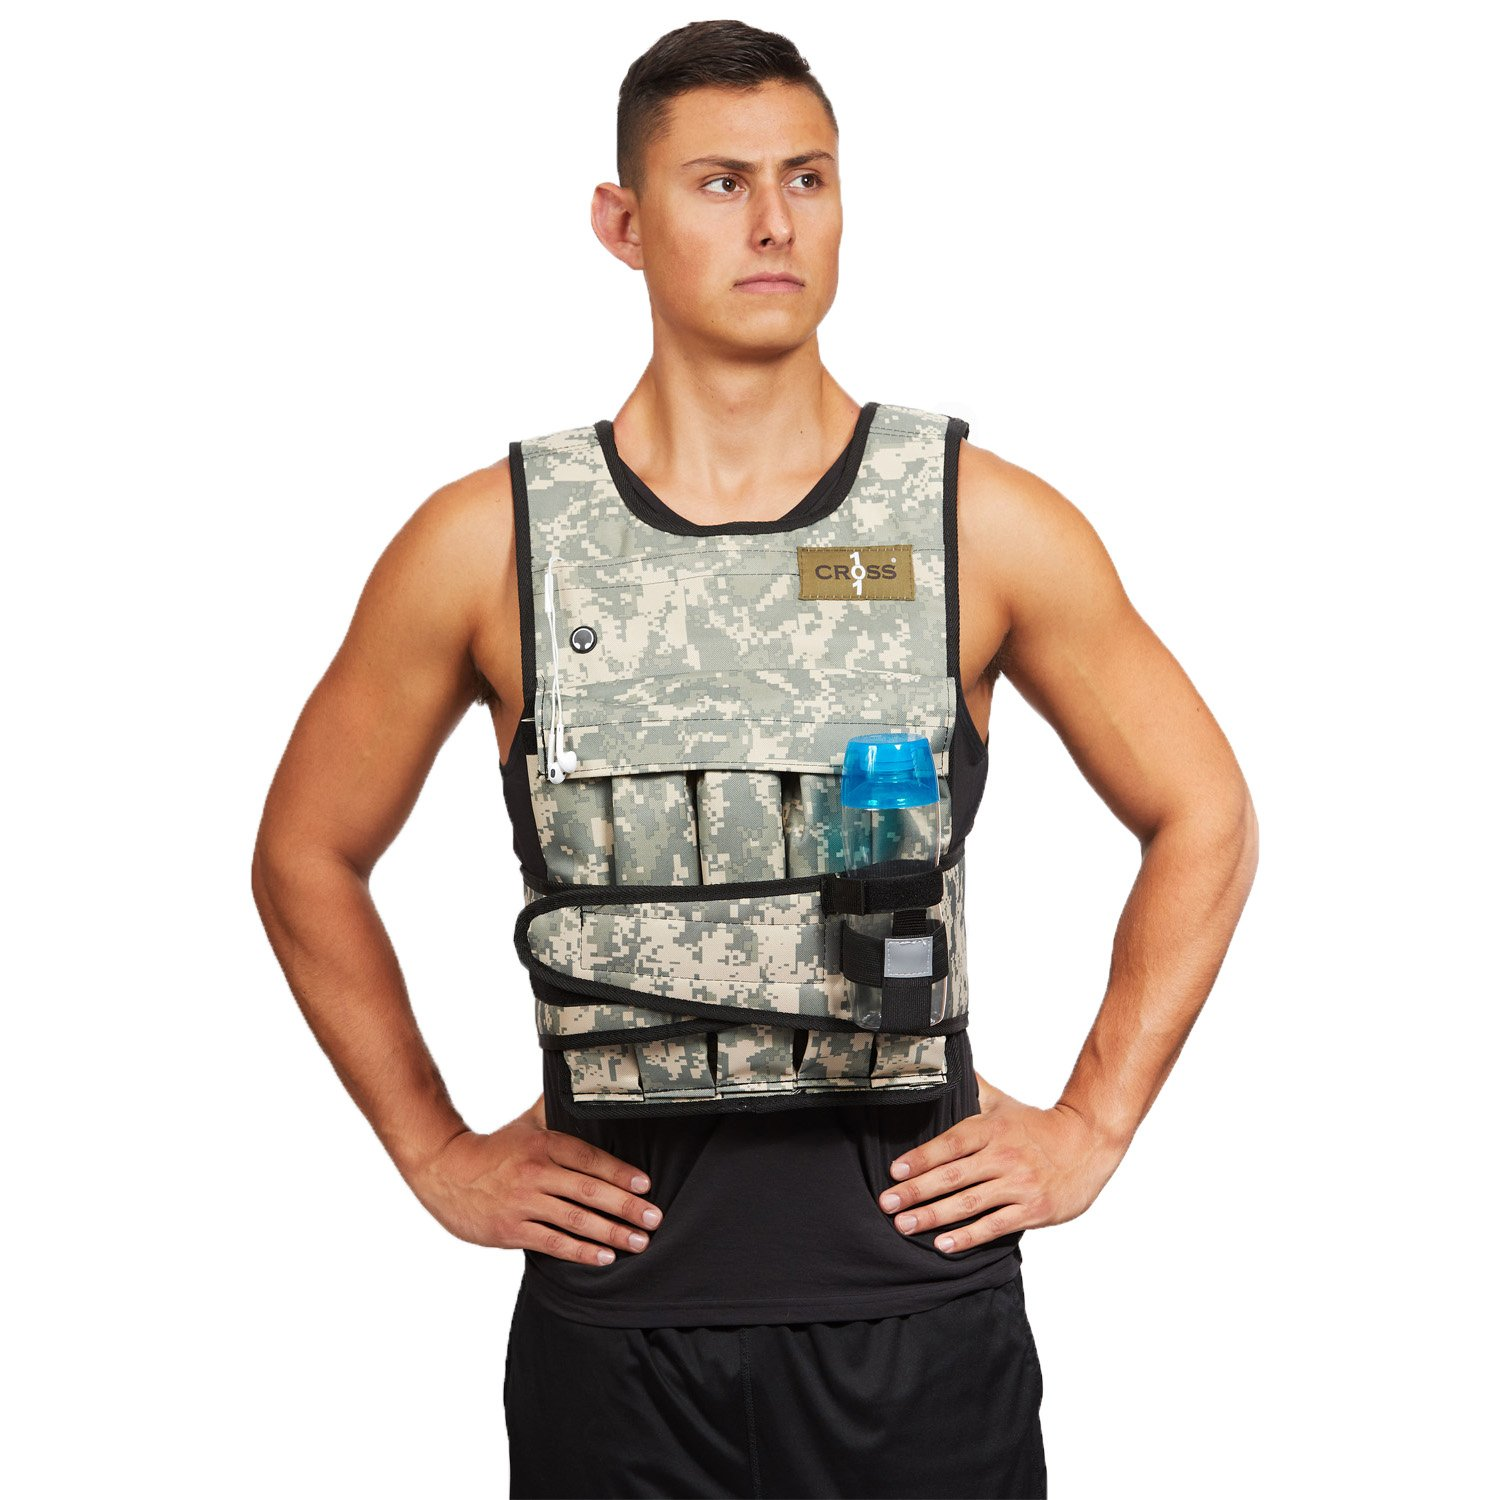 Cross 101 Adjustable Weighted Vest, 40 lbs (Camouflage) With Phone Pocket & Water bottle holder by CROSS101